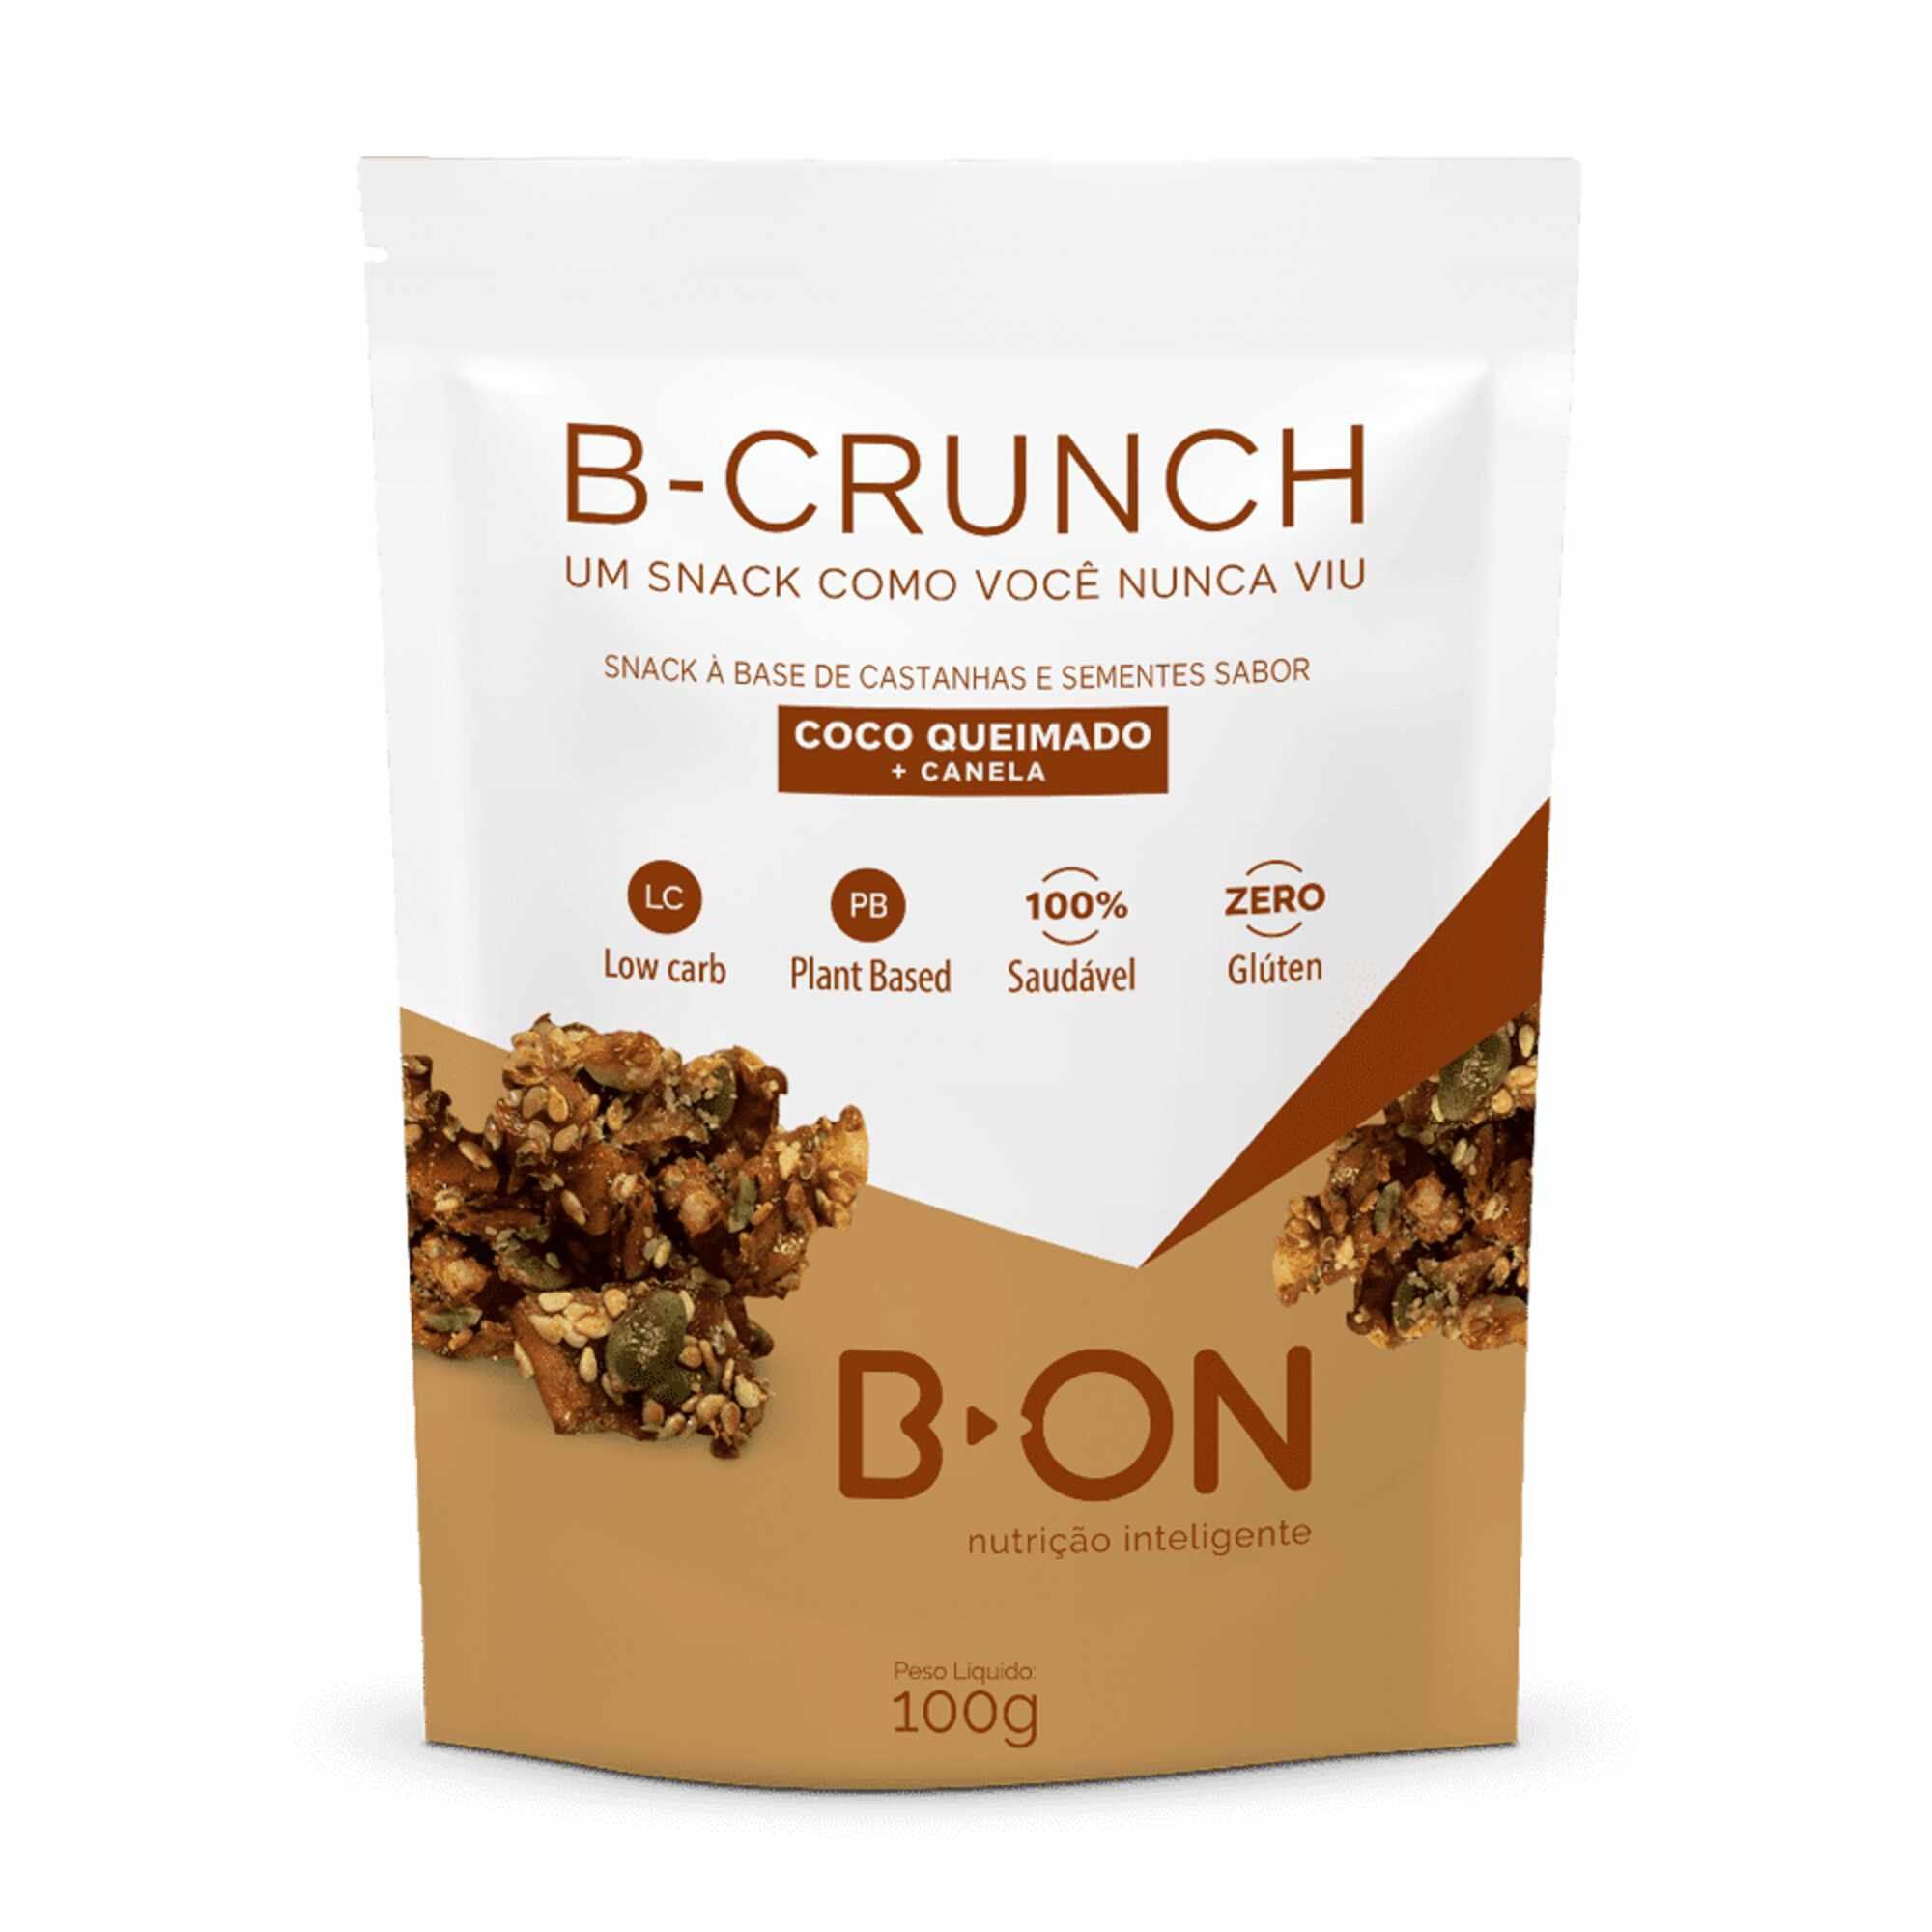 B-Crunch Coco Queimado e Canela 100g B-On